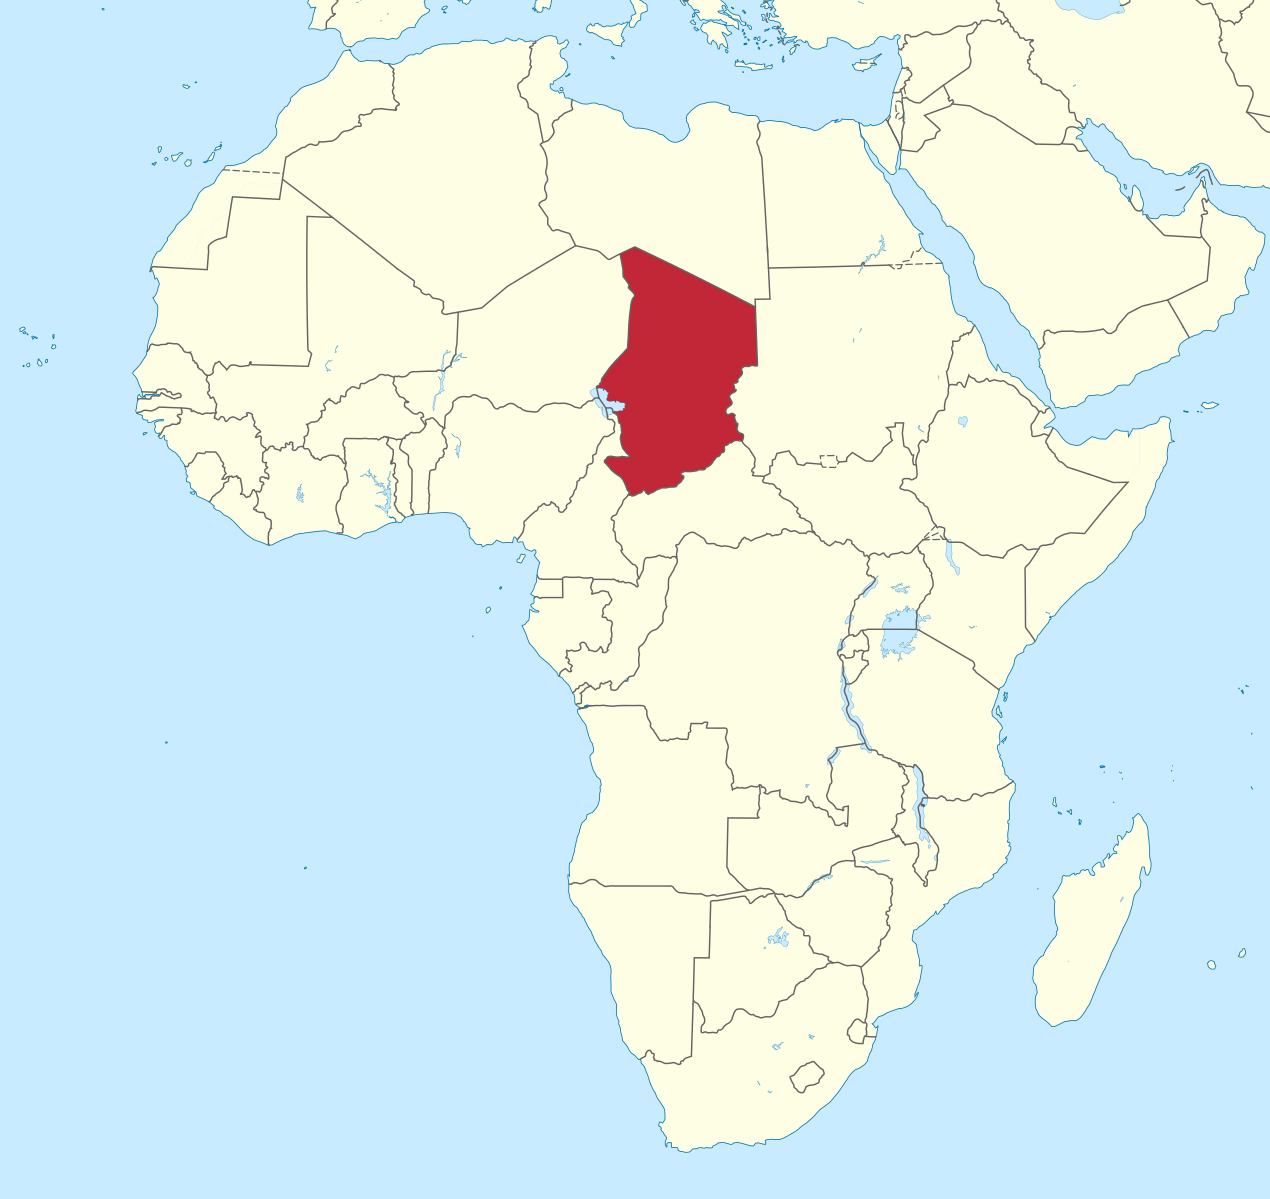 Chad Africa Map File:Chad in Africa ( mini map  rivers).svg | Africa map, Africa, Map